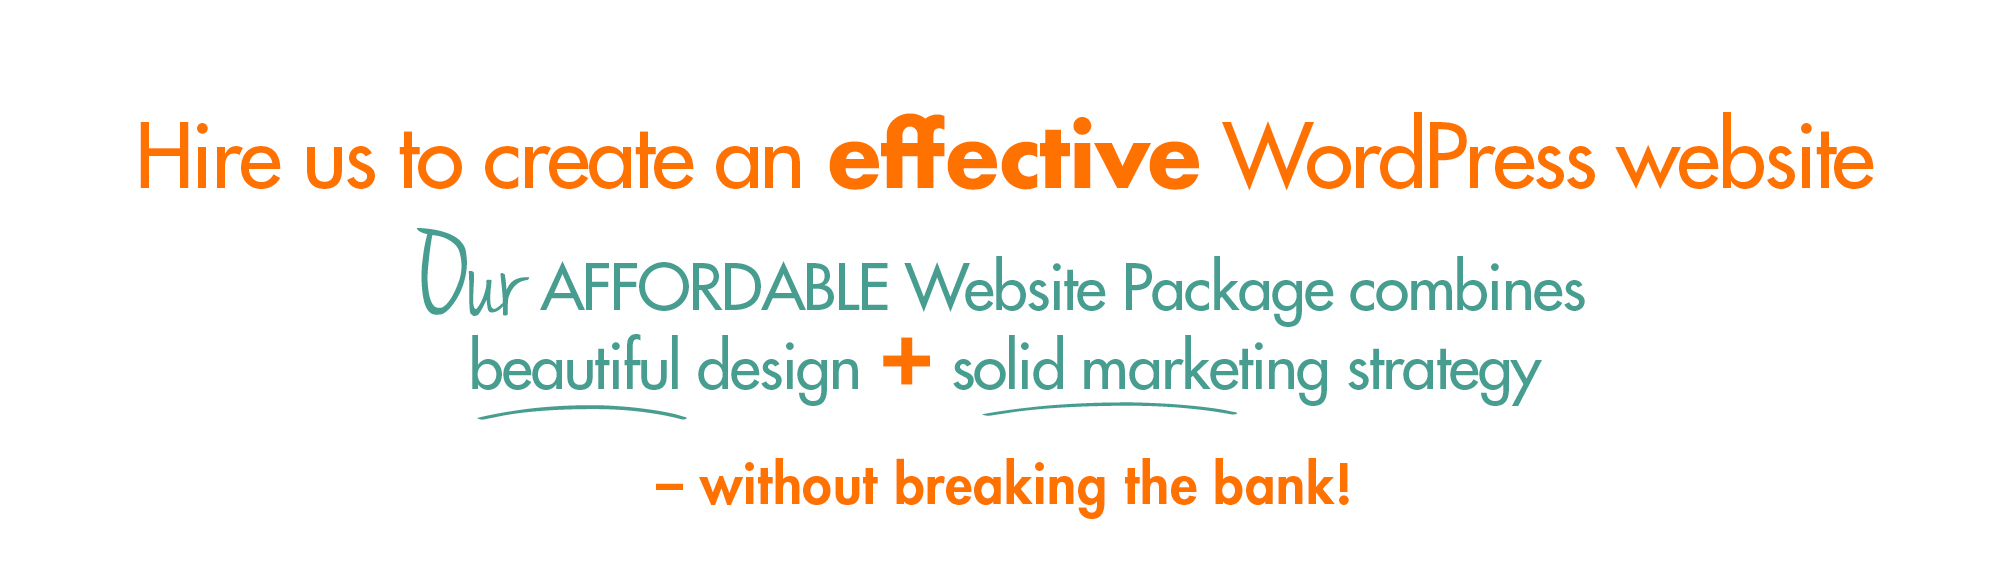 Hire us to create effective website v1